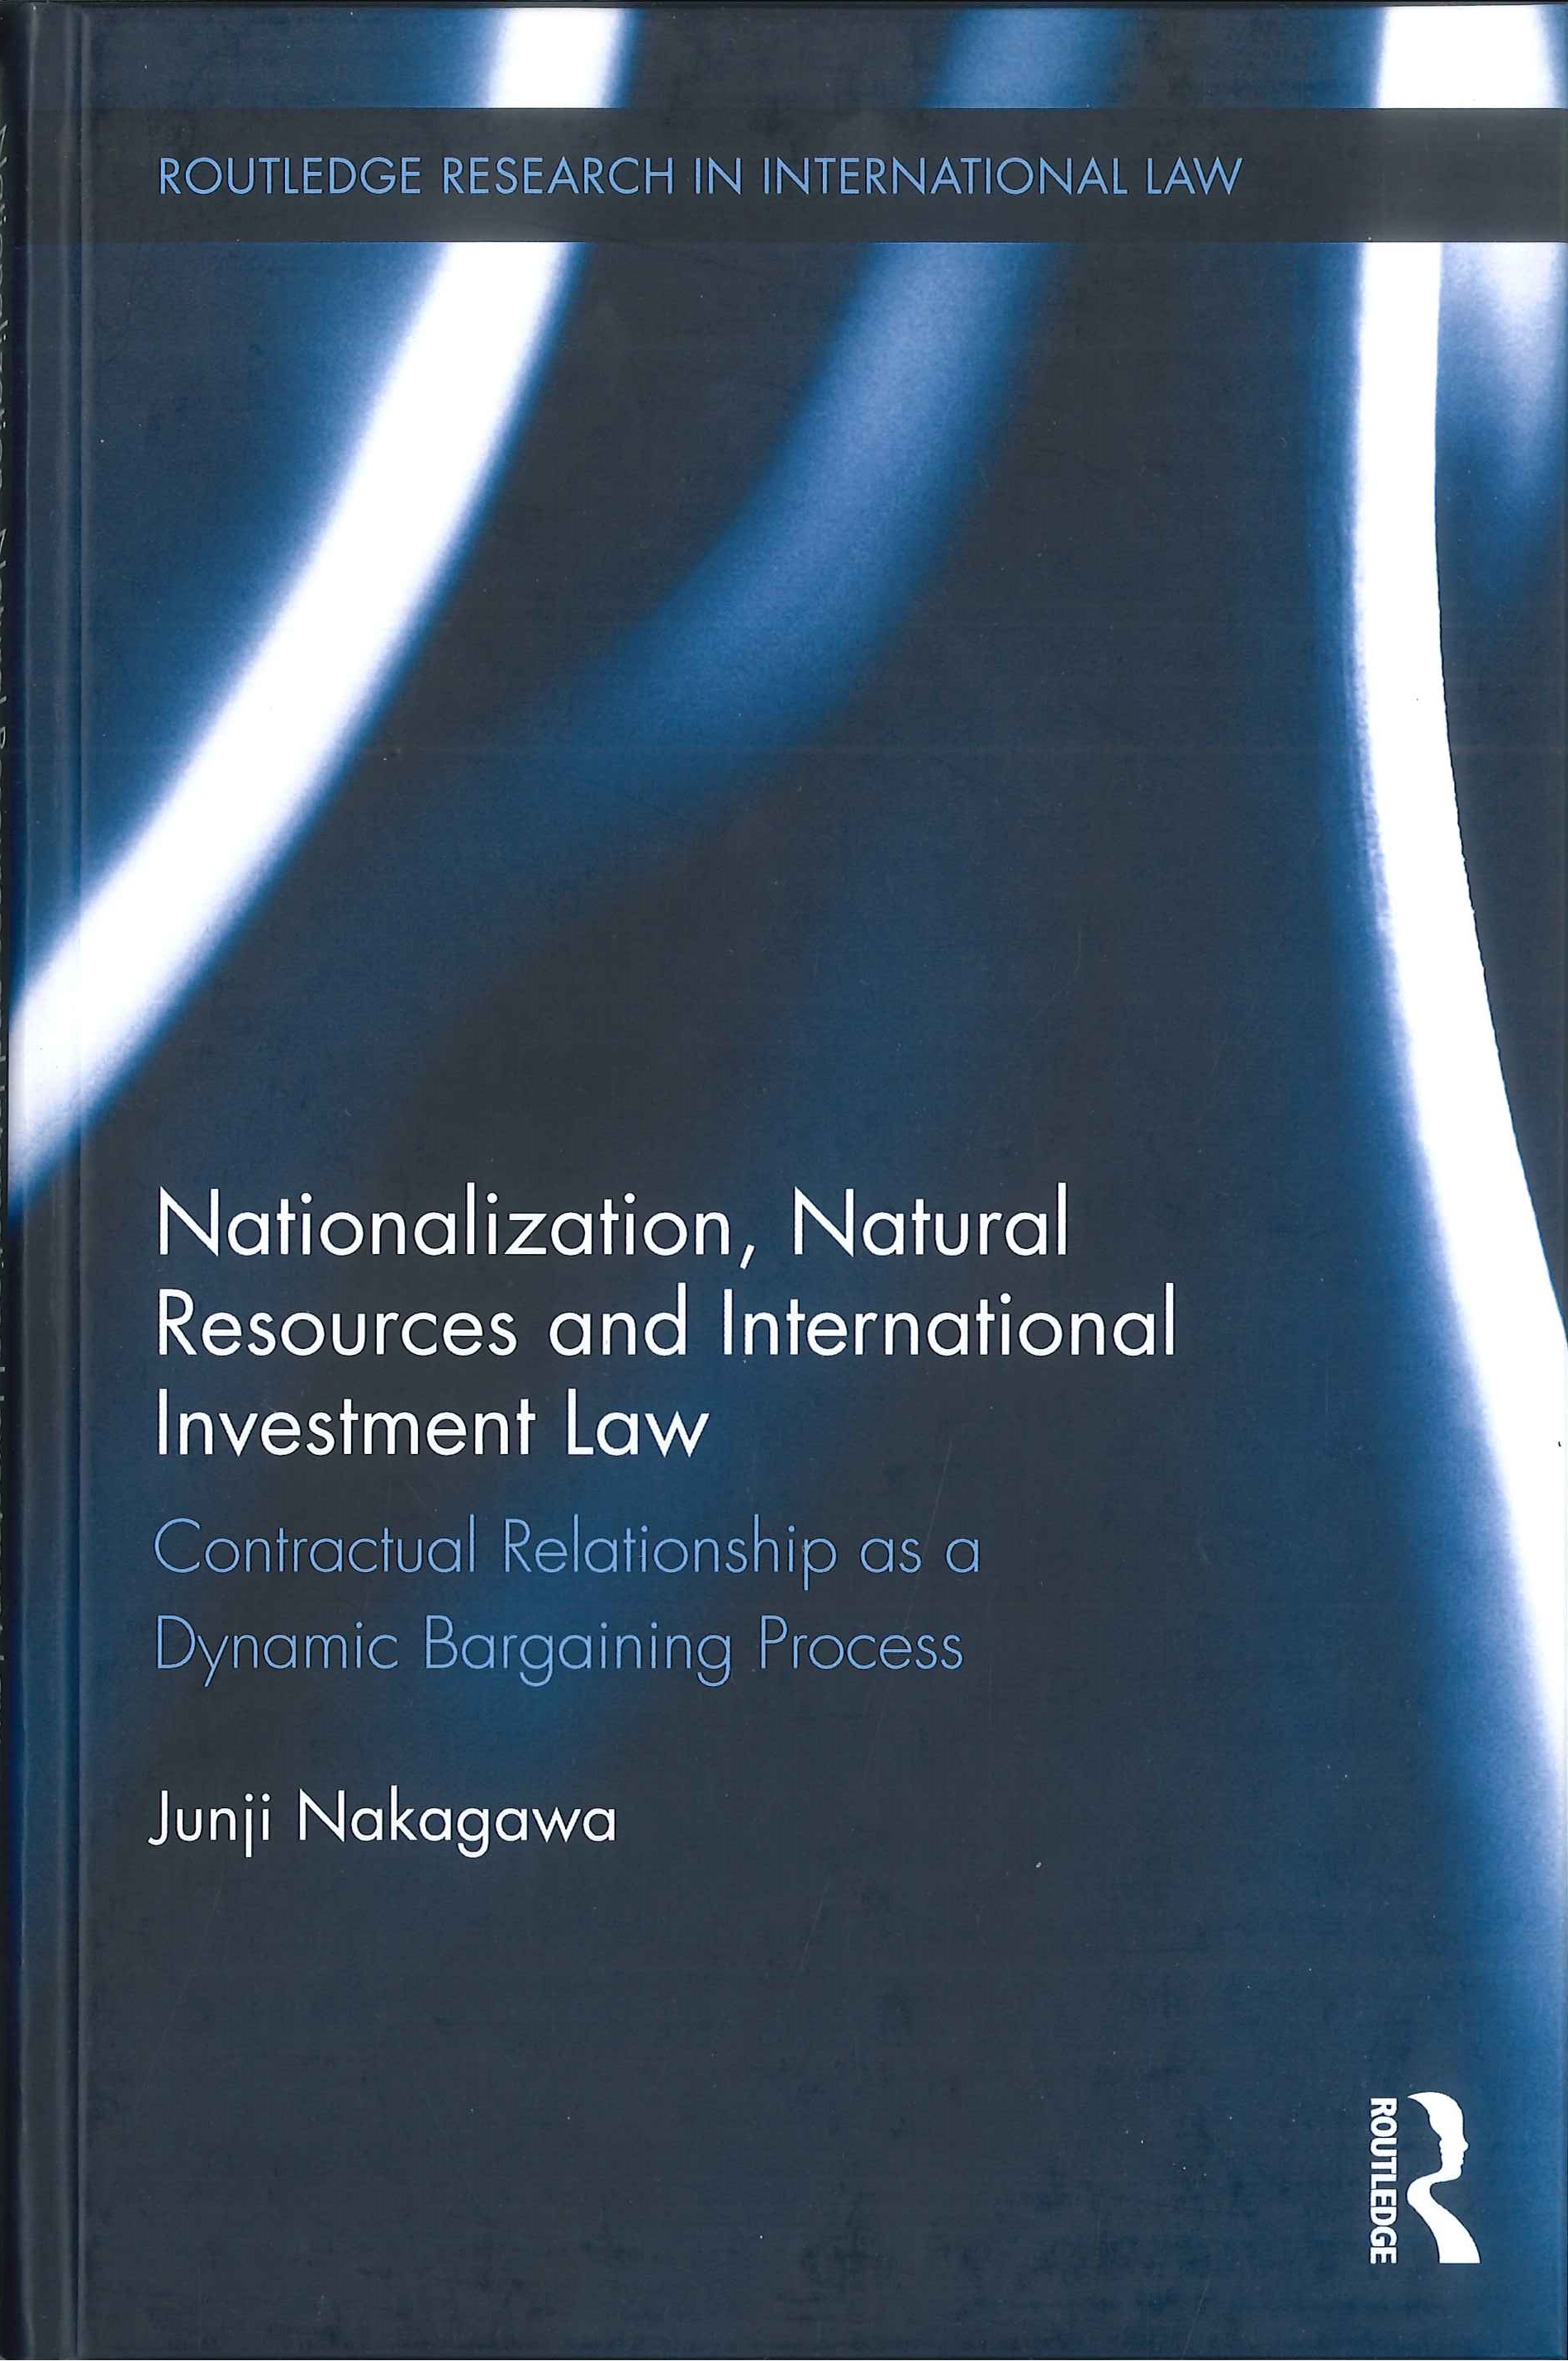 Nationalization, natural resources and international investment law:contractual relationship as a dynamic bargaining process